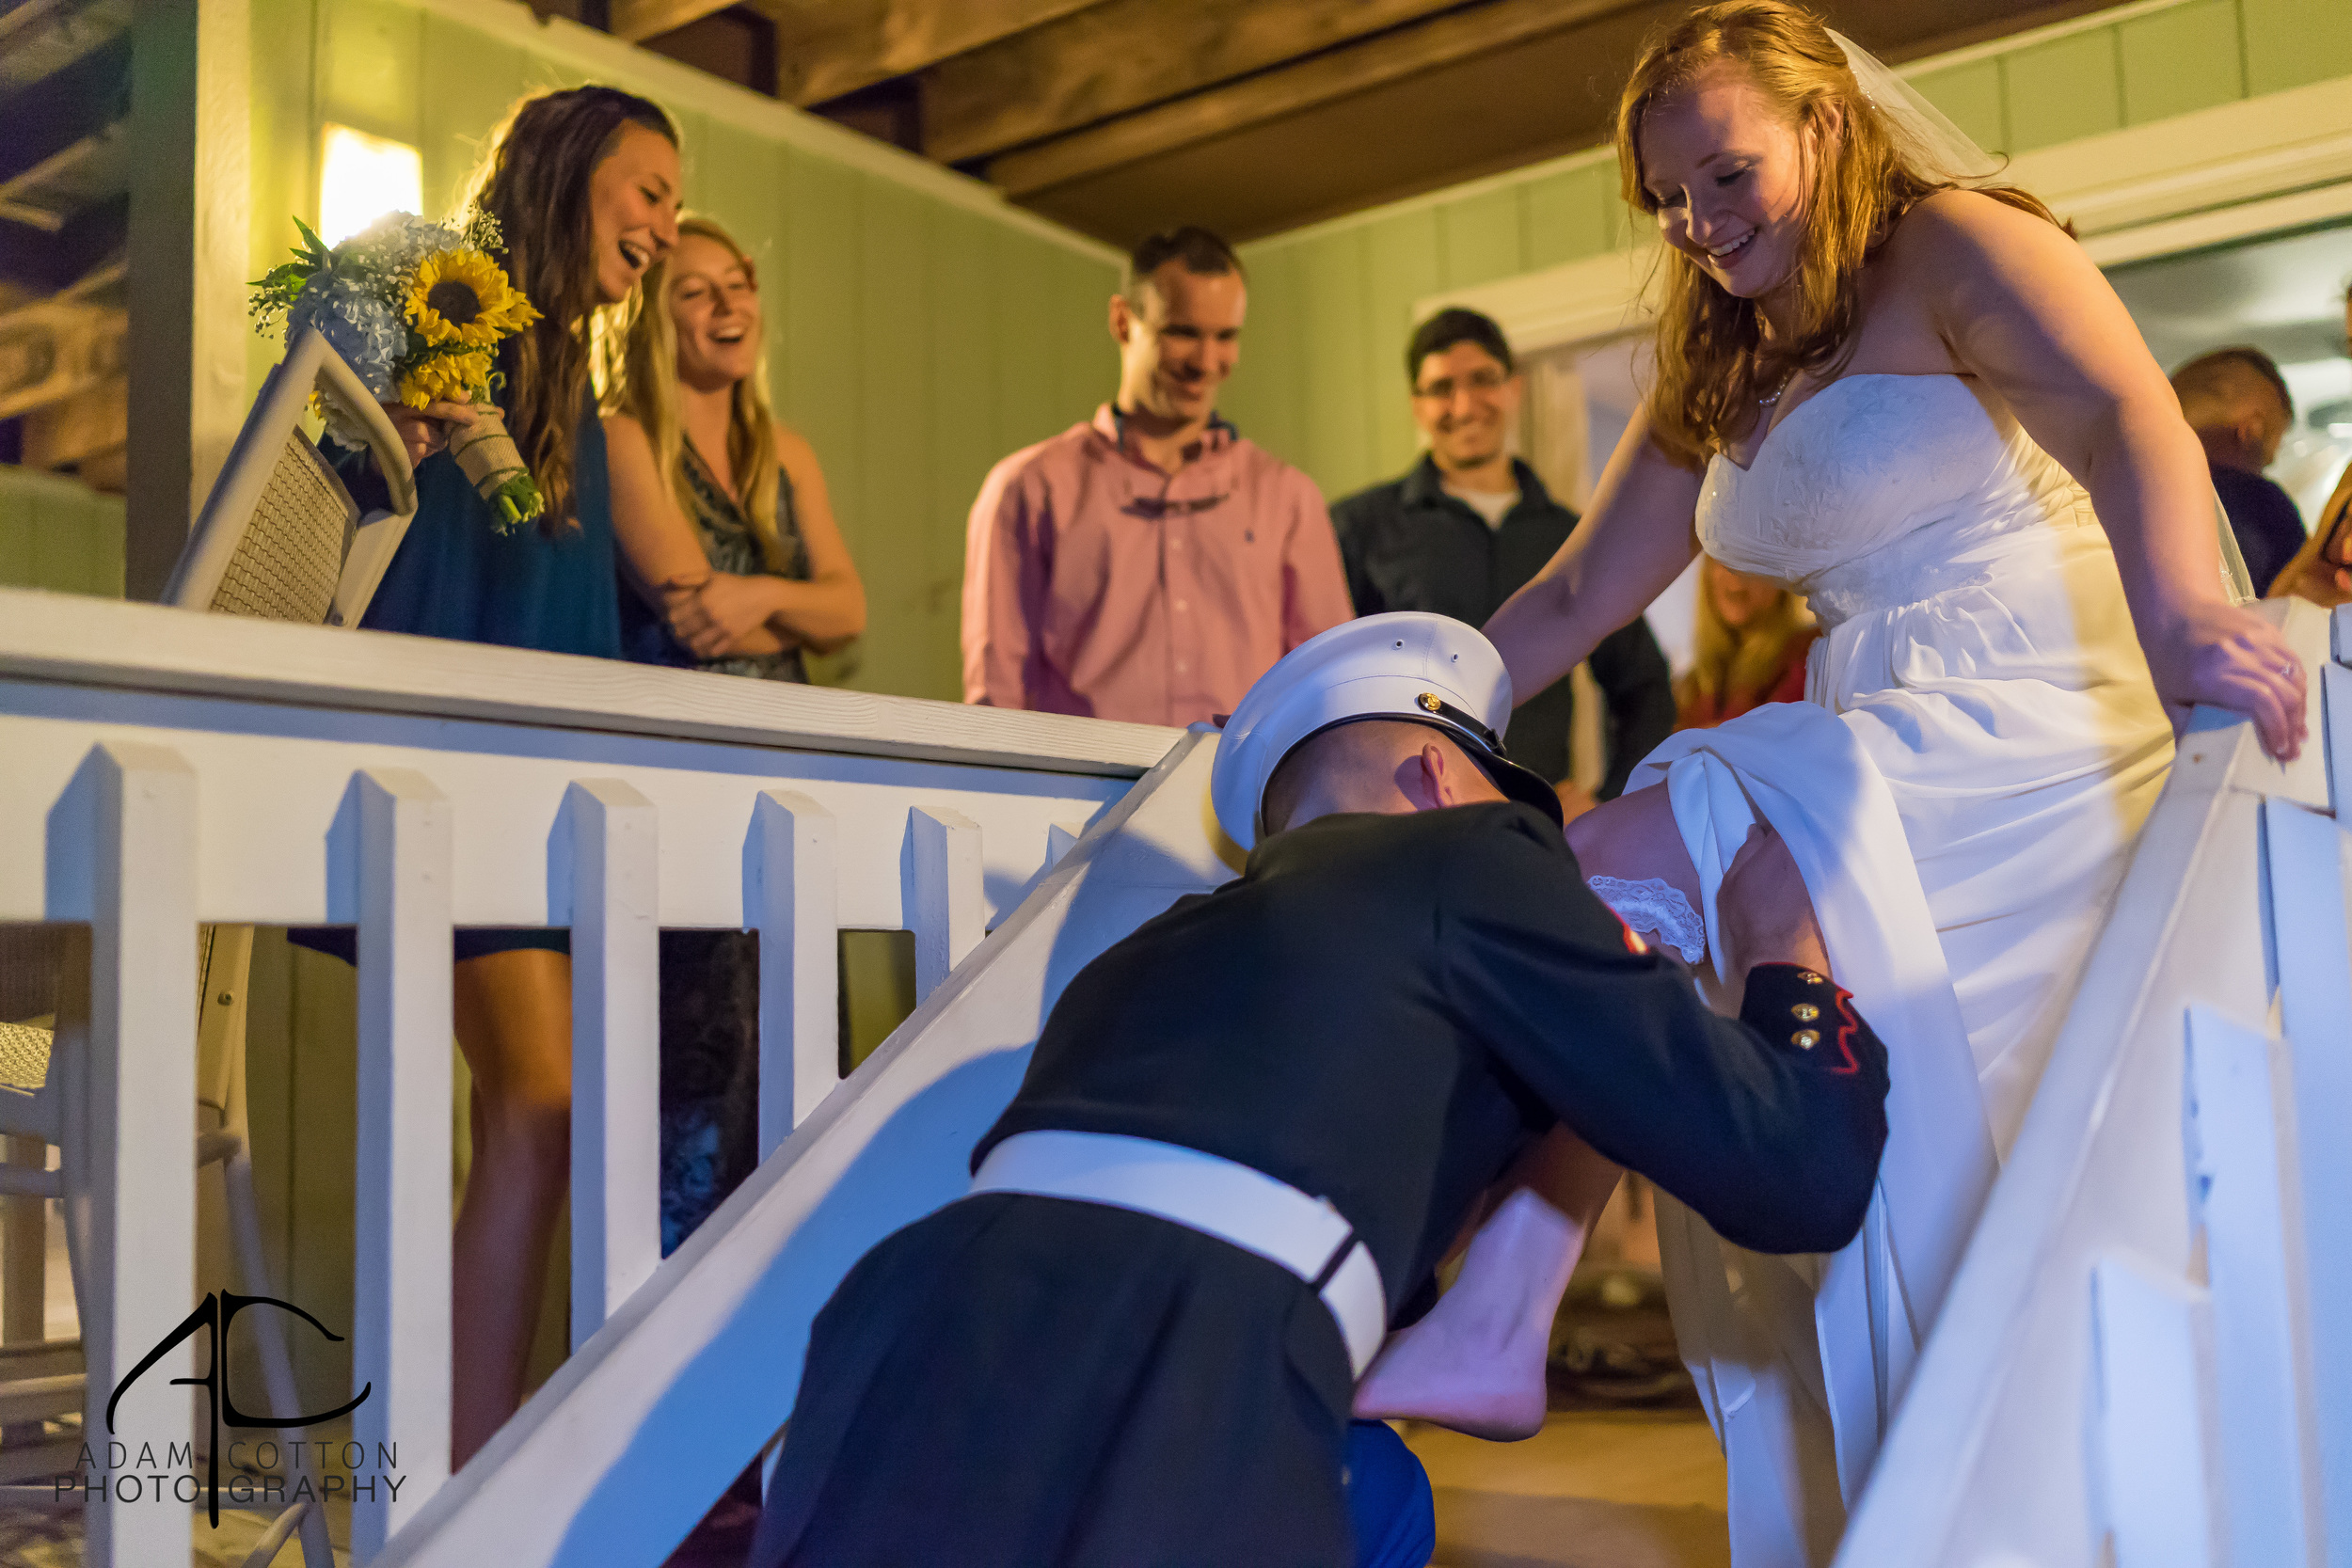 image of groom removing garter from bride pensacola florida wedding photographer adam cotton